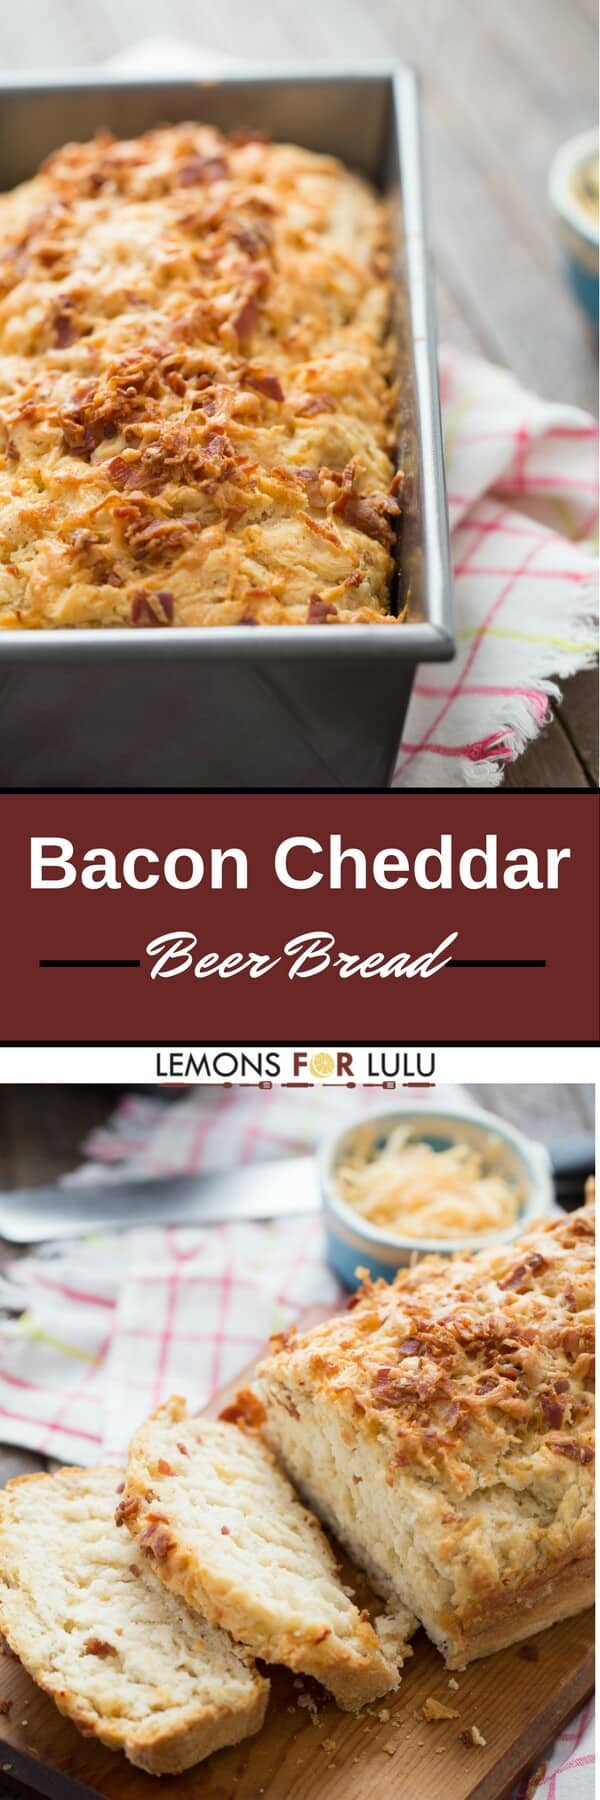 Love beer, bacon and cheese? So do I! That's why this easy beer bread recipe is one of my favorites. It's simple, soft and so delicious!